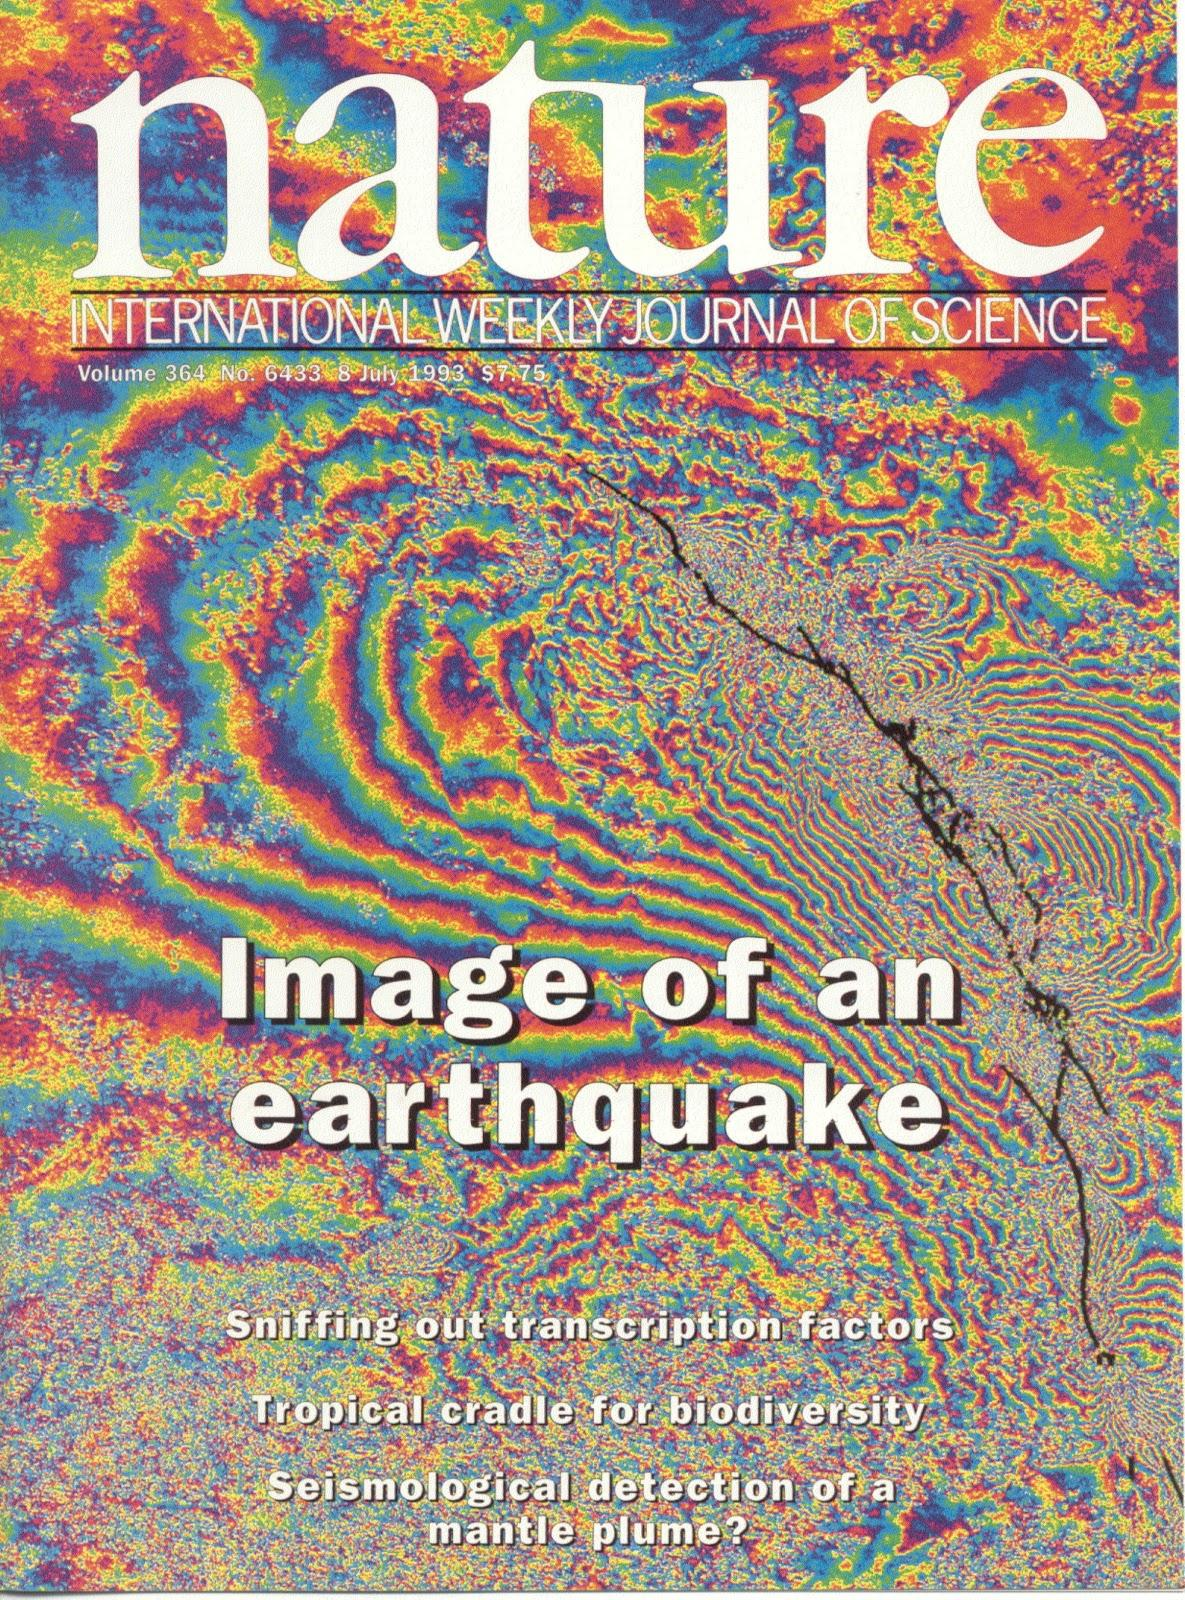 This figure maps the deformation produced by an earthquake. Using InSAR,  Feigl and colleagues in a team led by Didier Massonnet at the CNES space agency in France analyzed images before and after the 1992 Landers earthquake in California. As featured in Nature in 1994, each full cycle of rainbow color indicates a displacement of 28 mm of the Earth's surface. Image Source: Nature Publishing Group